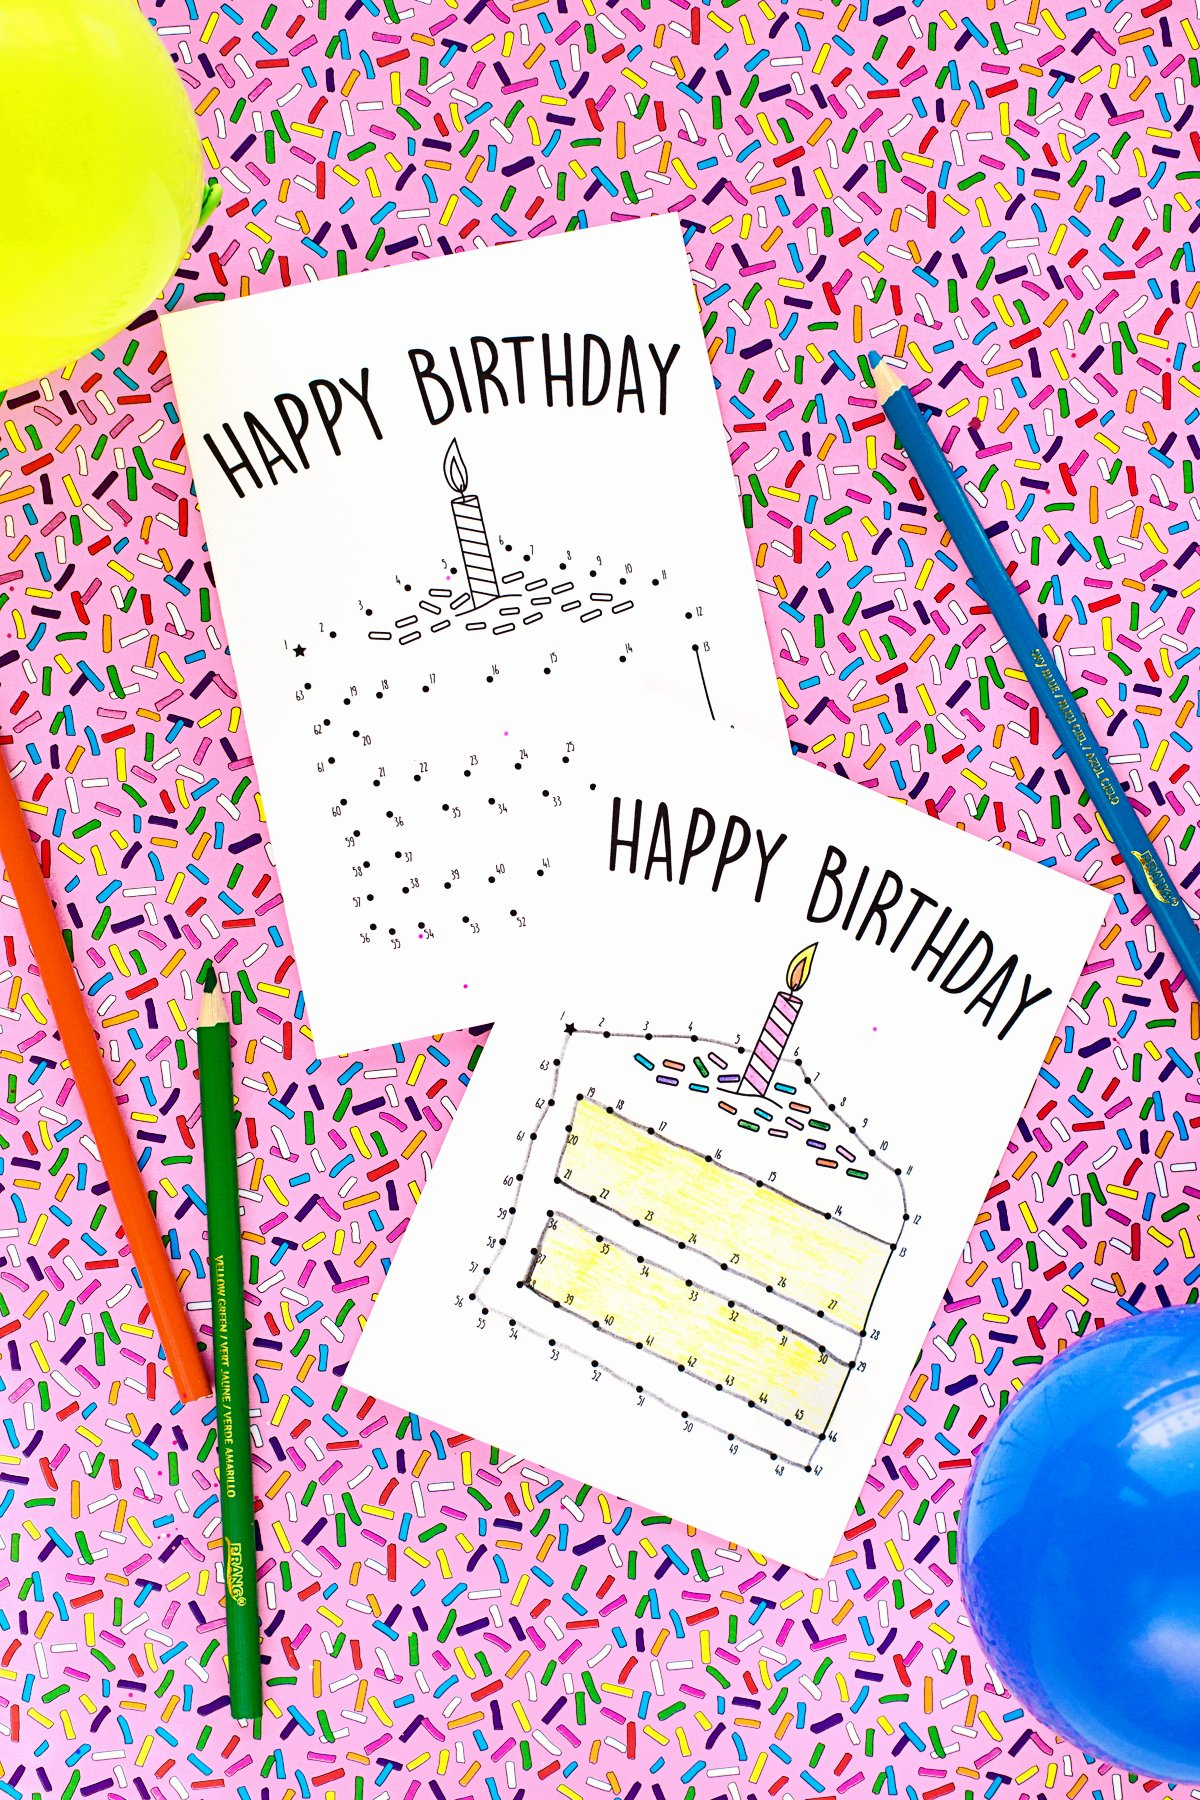 Printable Anniversary Cards Free Luxury Free Printable Birthday Cards for Kids Studio Diy